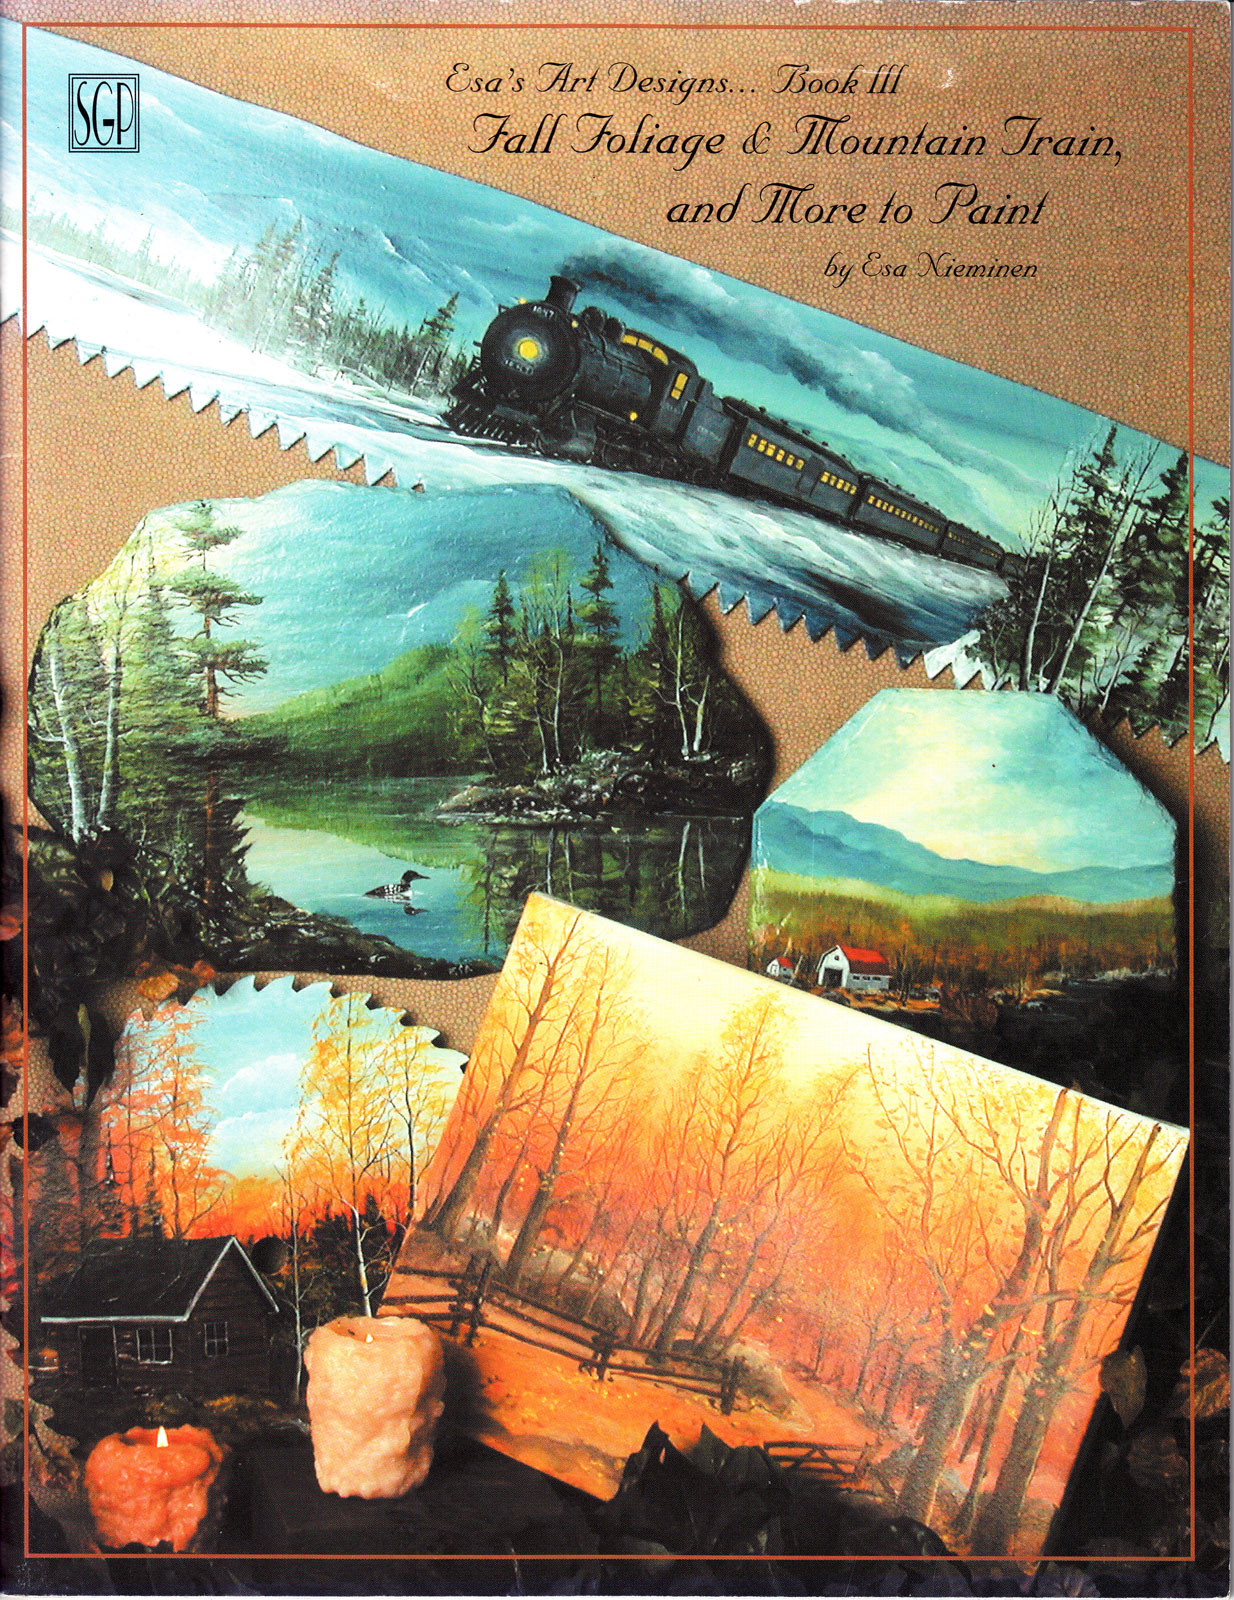 Fall foliage, mountain train and more to paint - Esa Nieminen